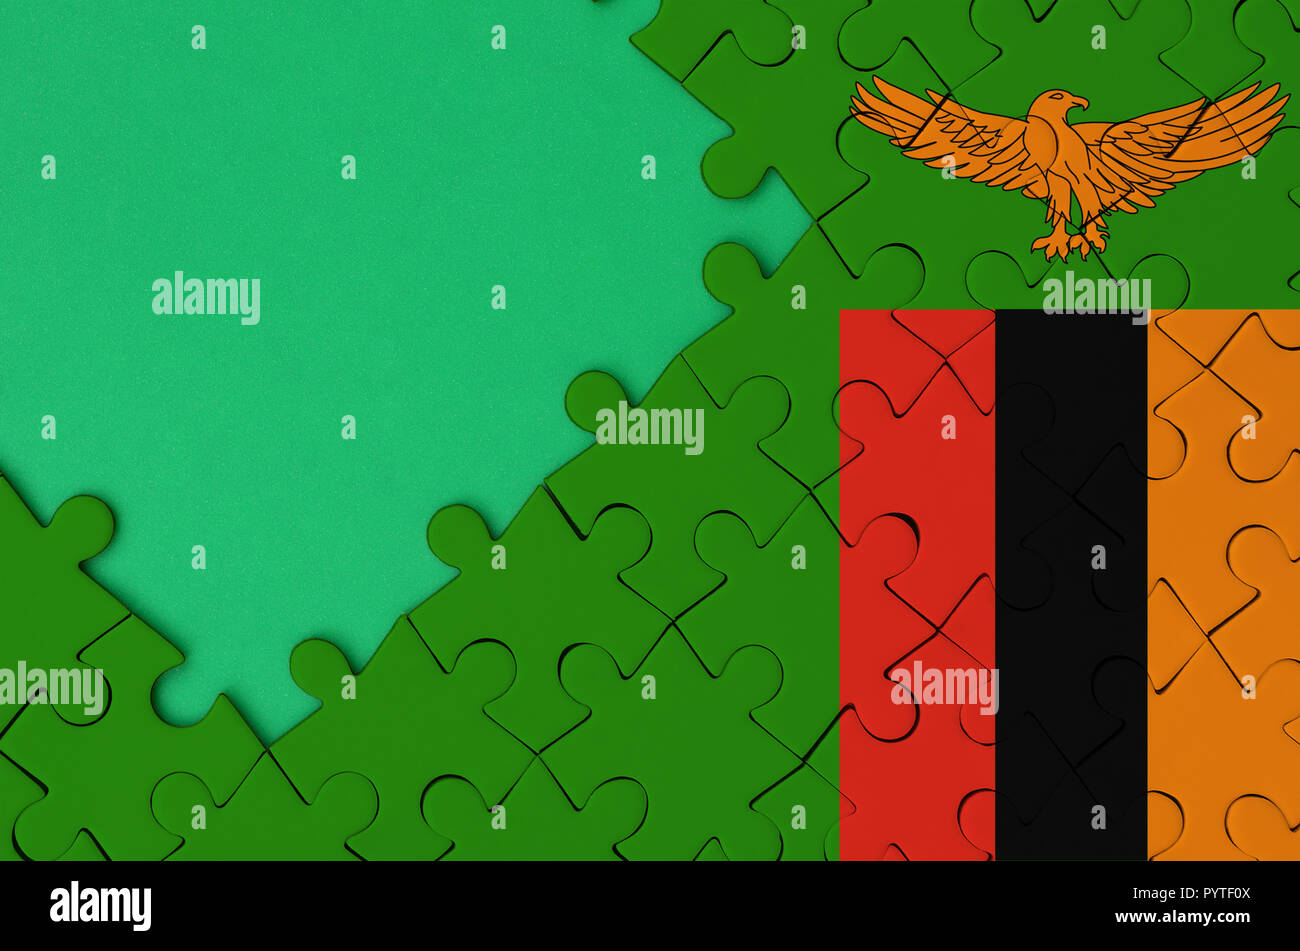 Zambia flag is depicted on a completed jigsaw puzzle with